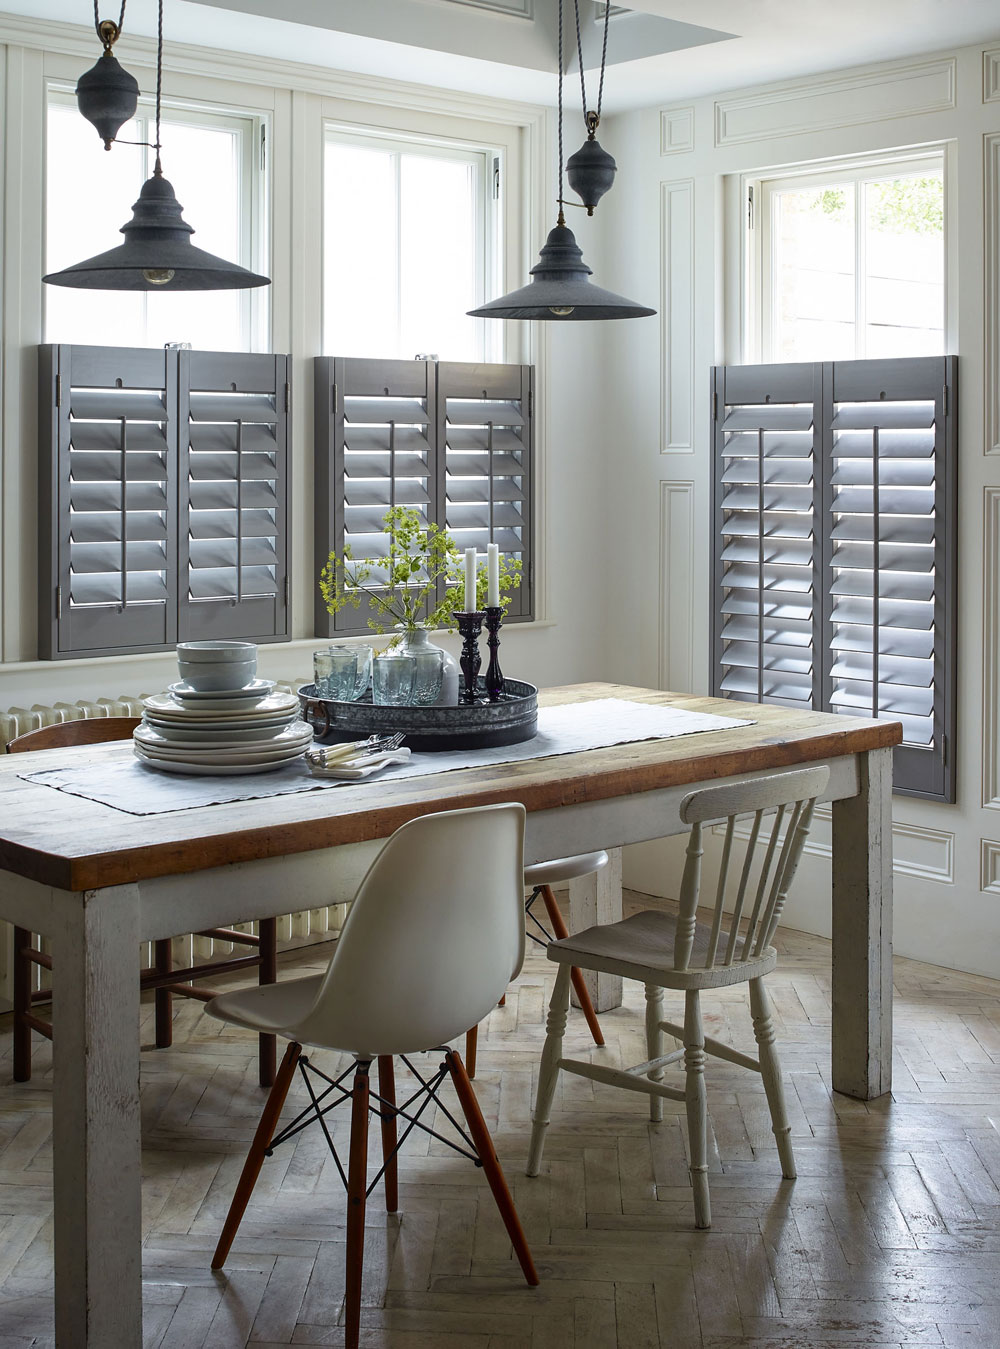 Cafe style shutters in a rustic farm kitchen